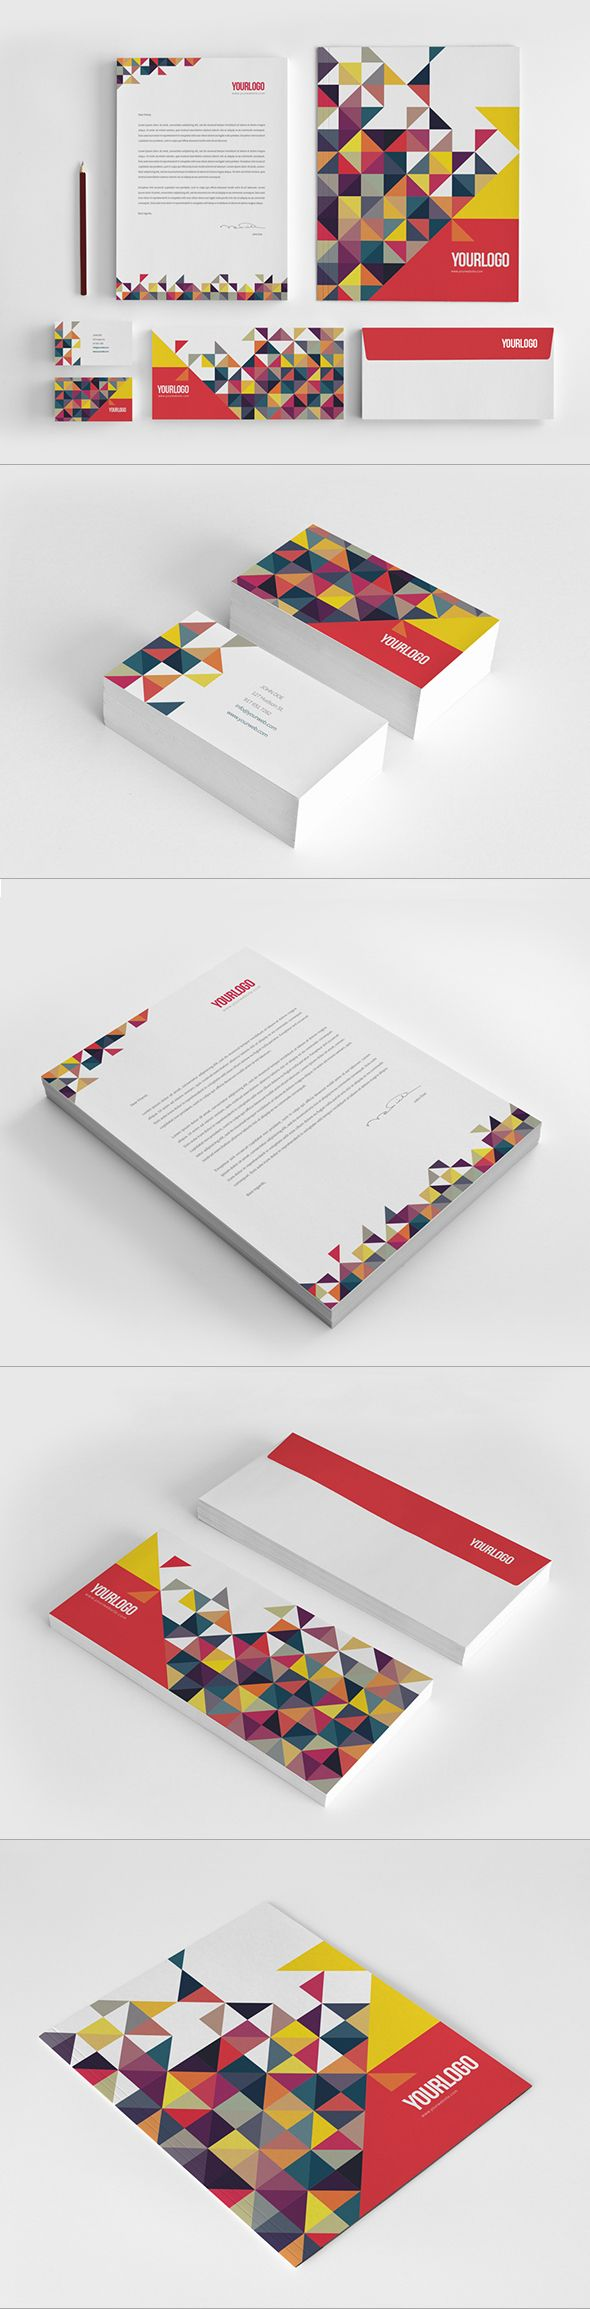 Colorful Triangles Stationery by Abra Design, via Behance #branding #identity